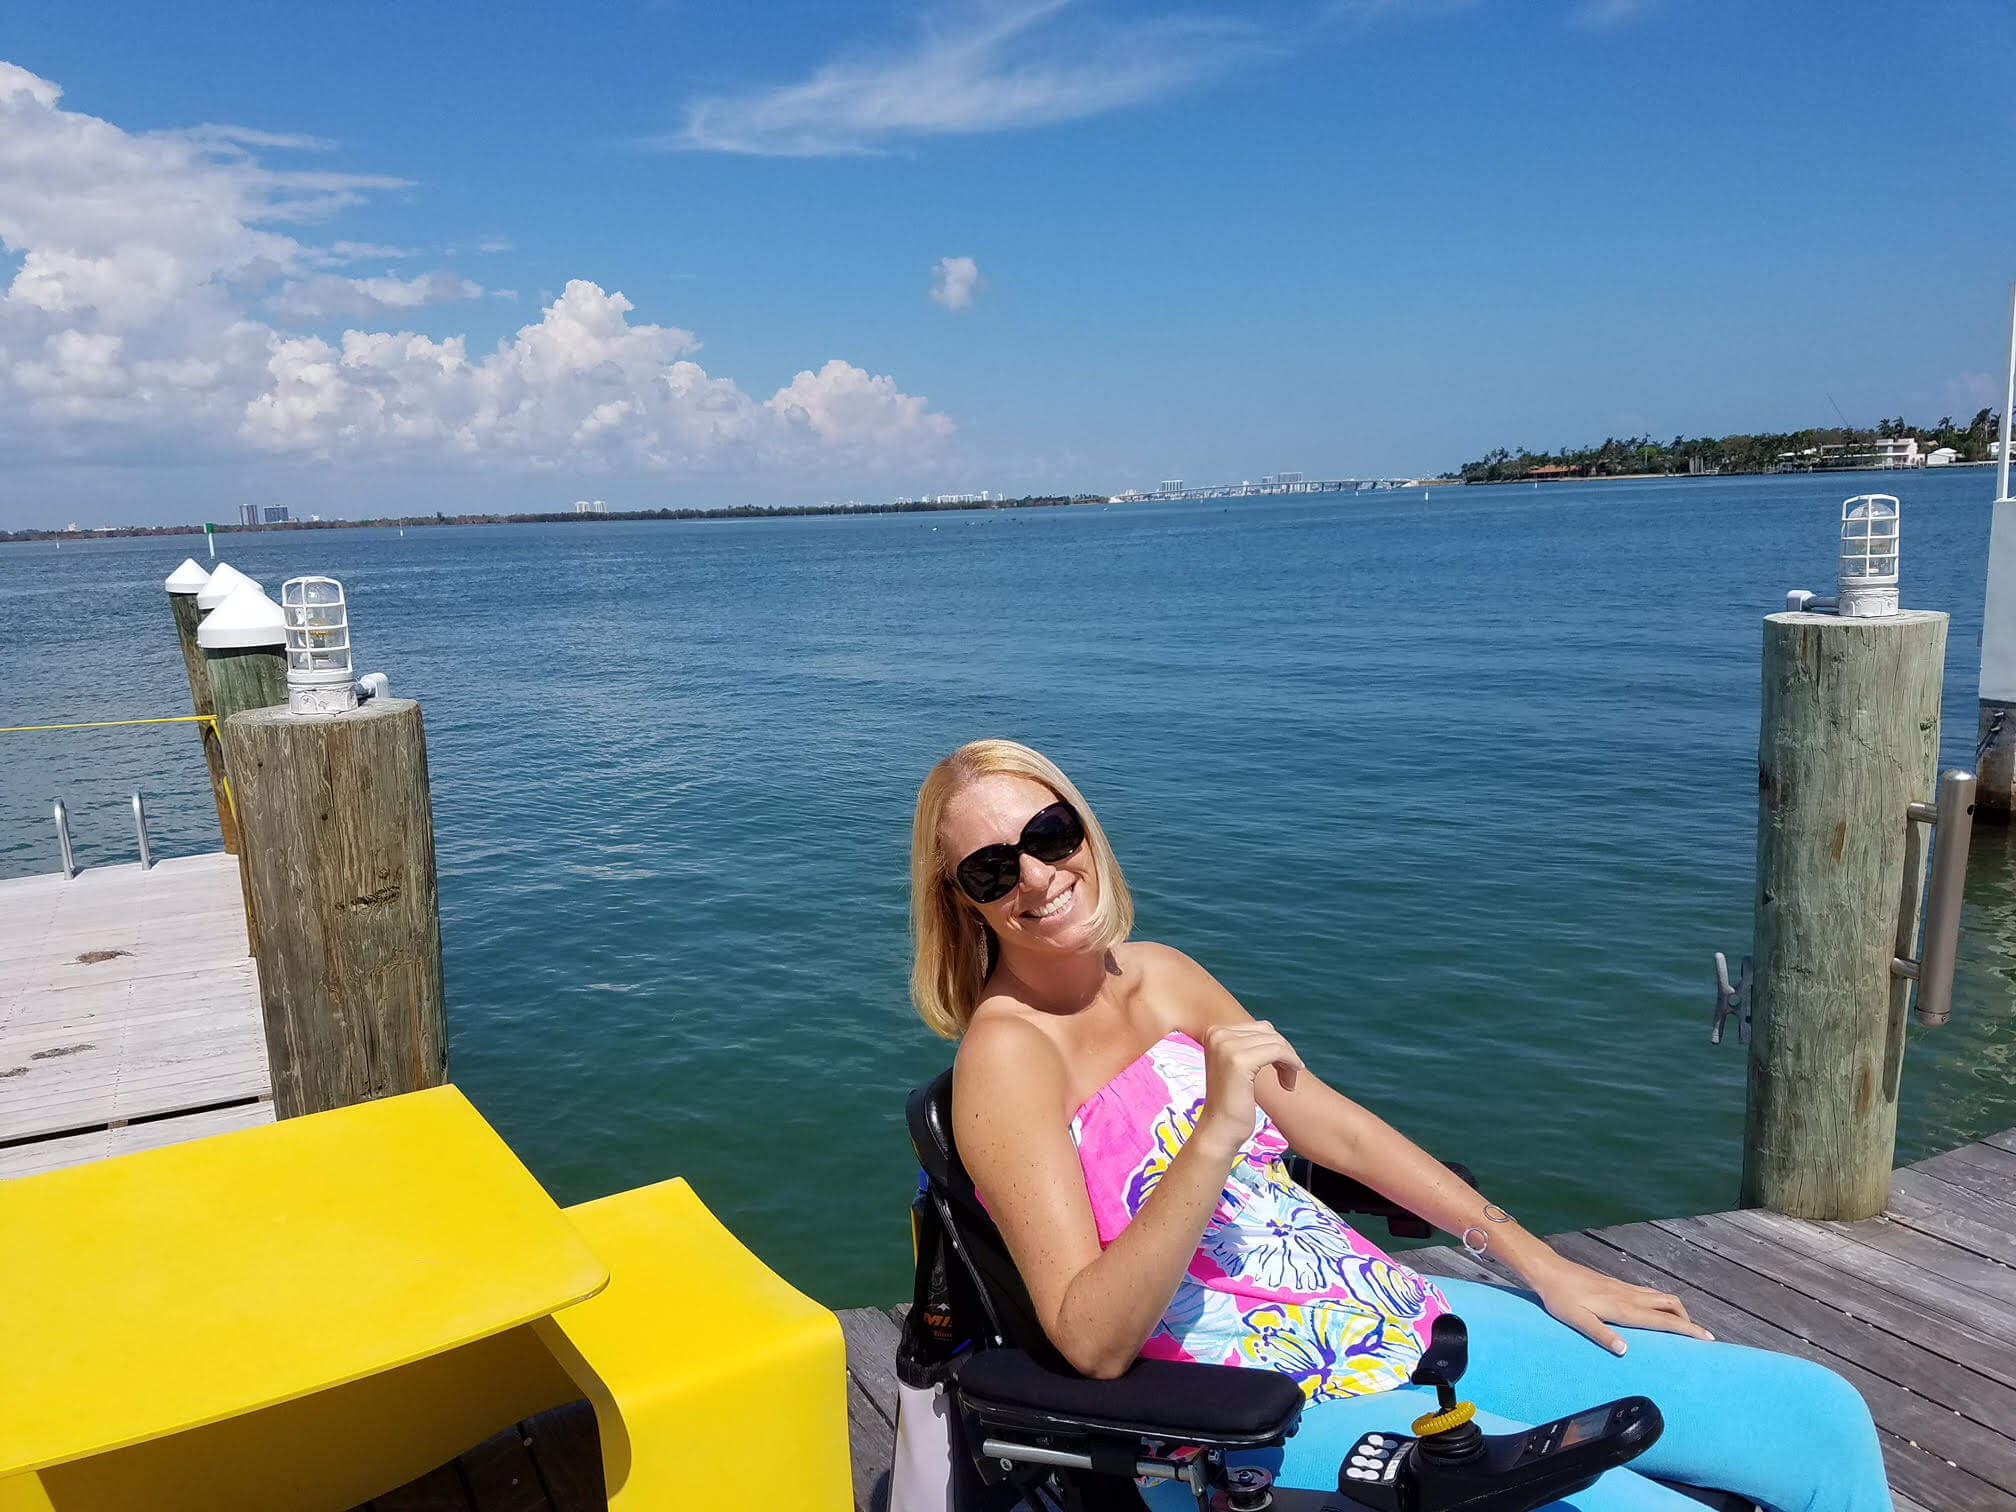 aliVacationImage5 - How I Vacation as a C6 Quadriplegic